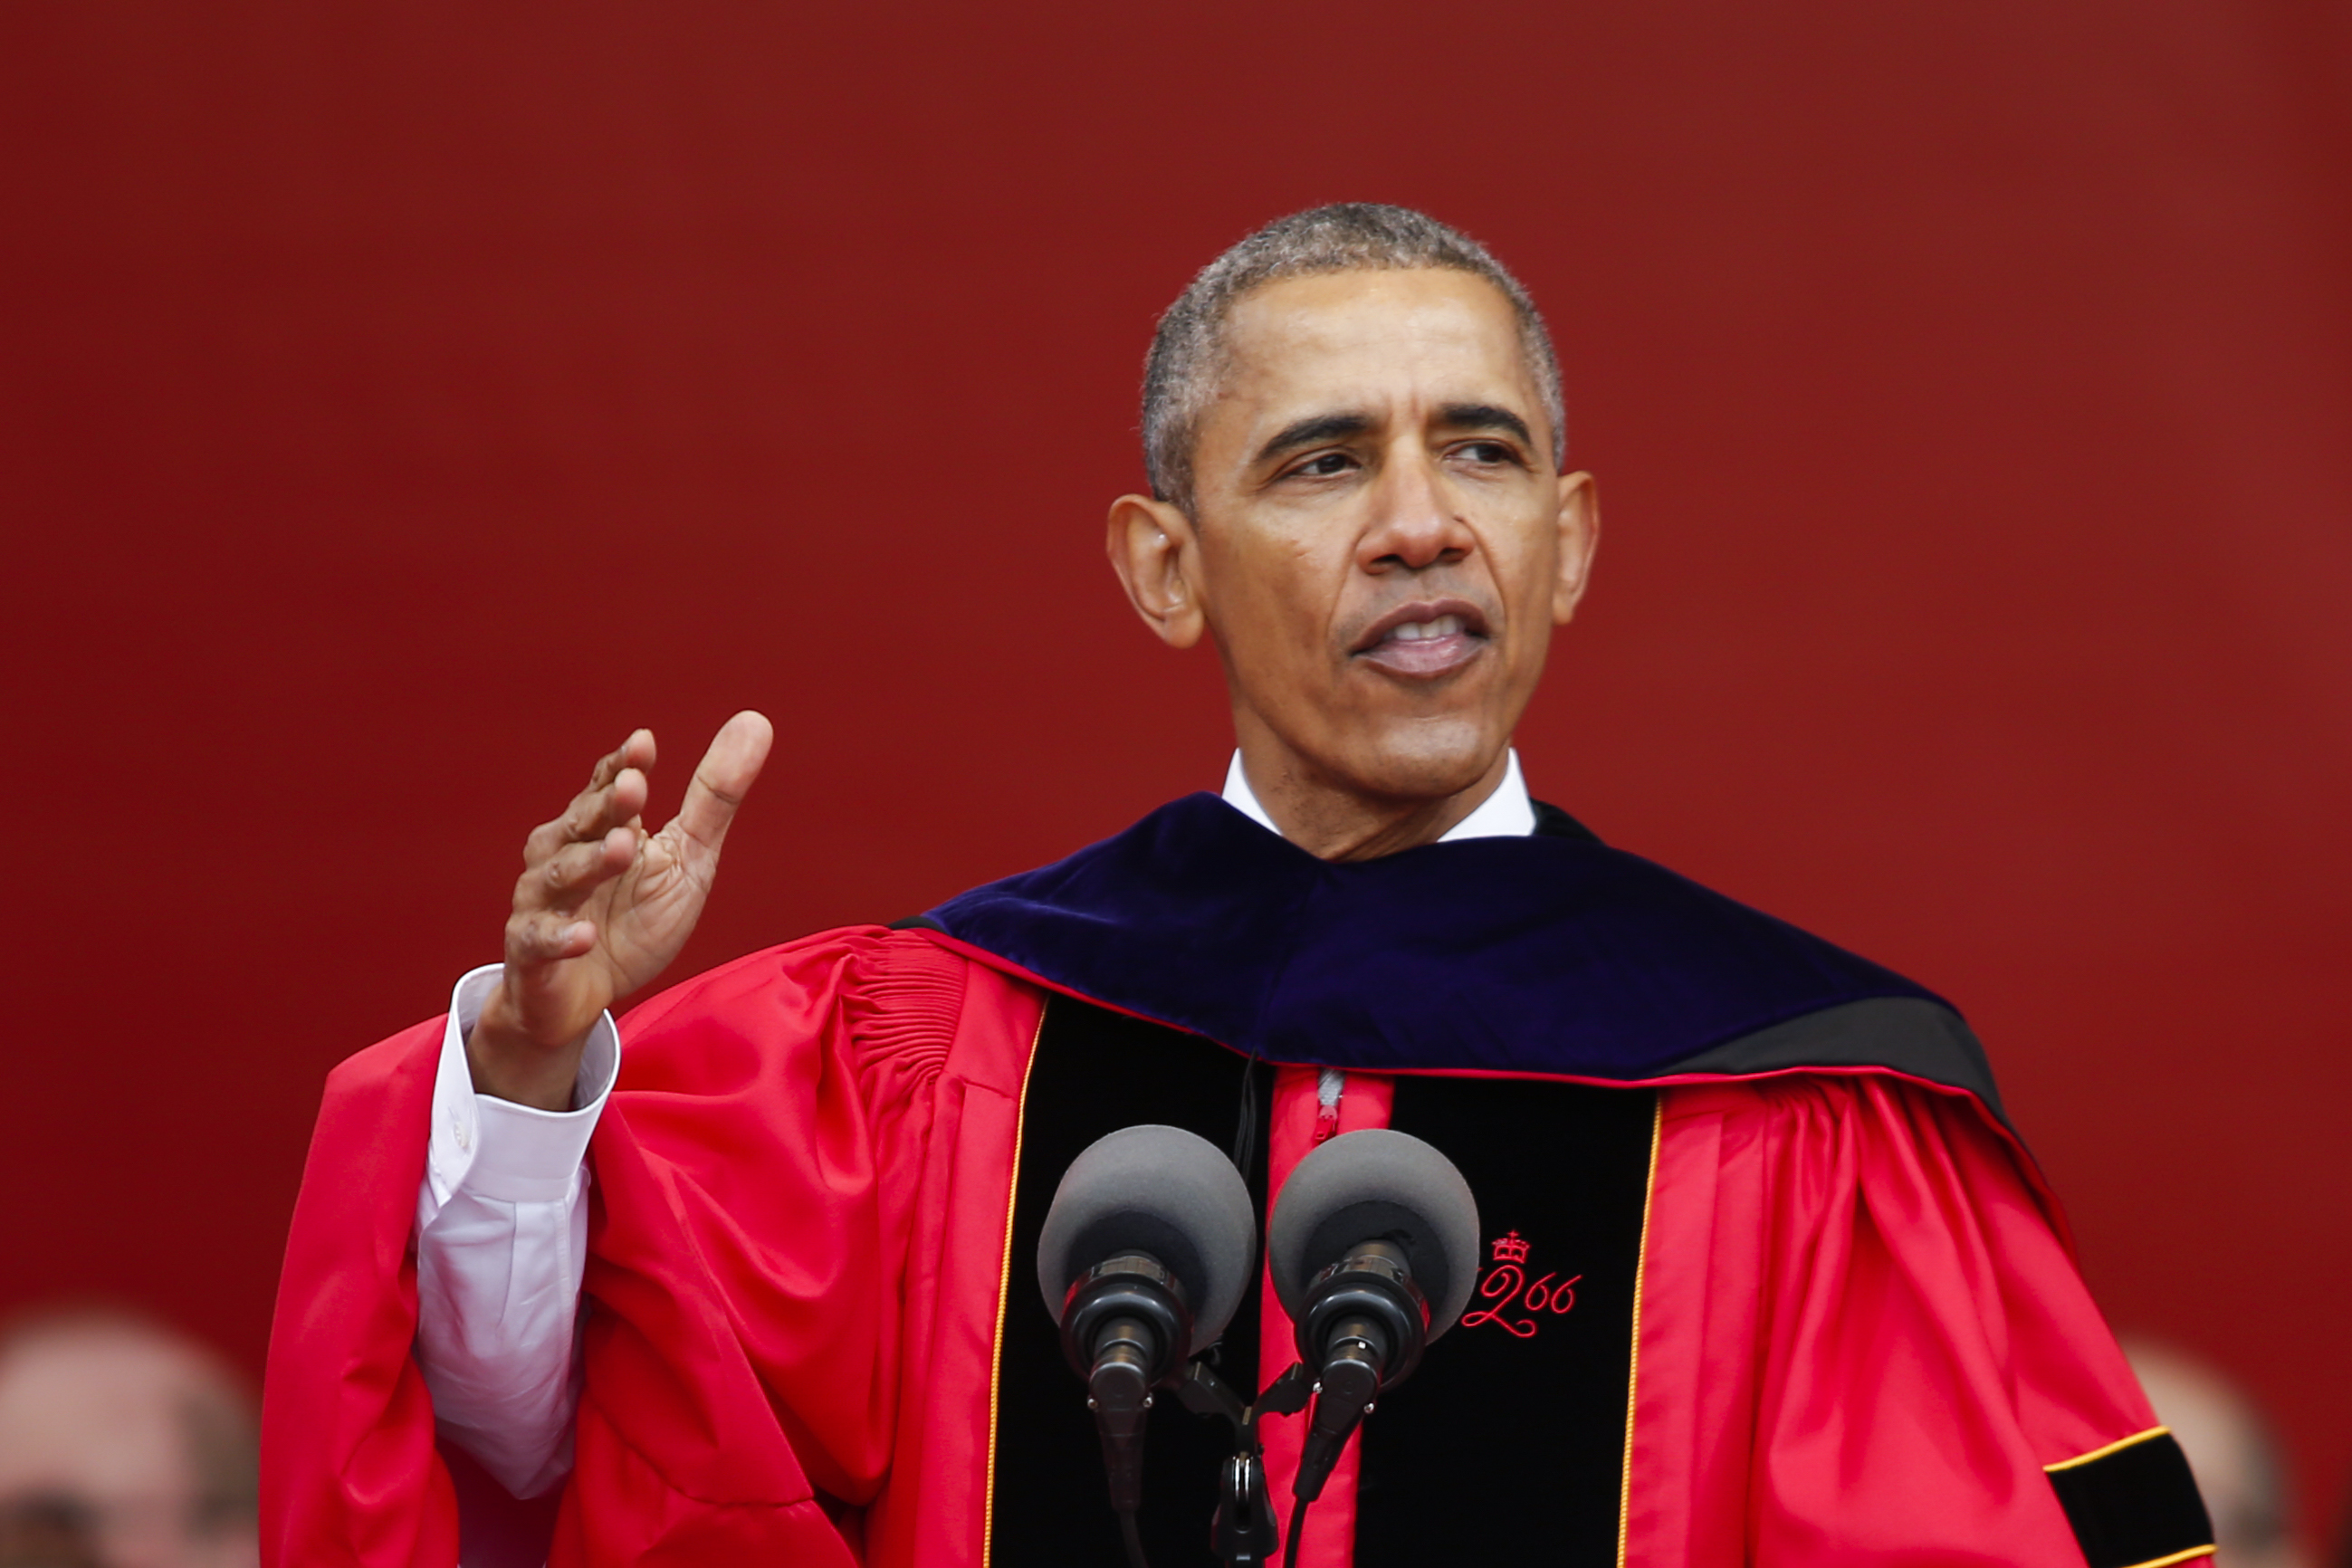 President Barack Obama speaks to students and attenders after receiving an honorary doctorate of laws during the 250th anniversary commencement ceremony at Rutgers University on May 15, 2016 in New Brunswick, New Jersey.